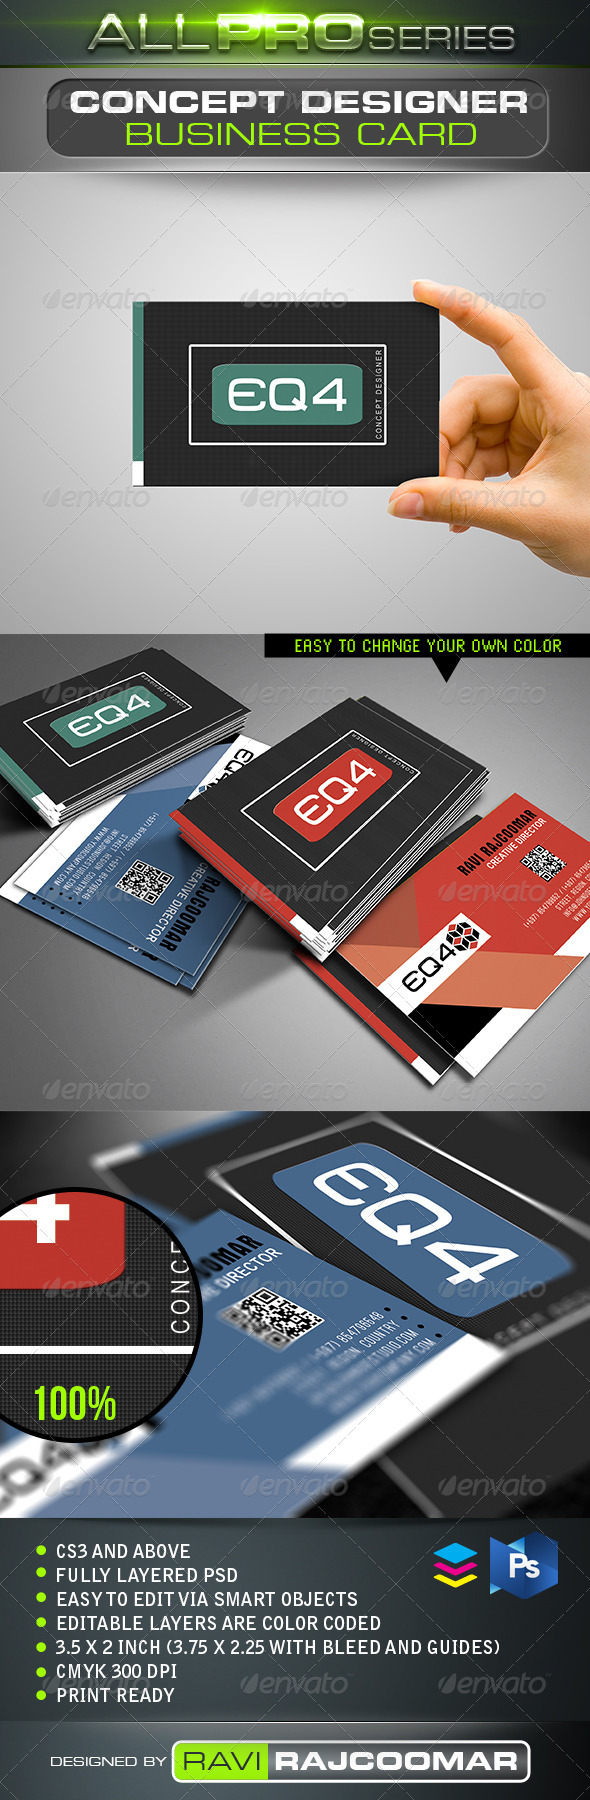 Concept Designer Business Card